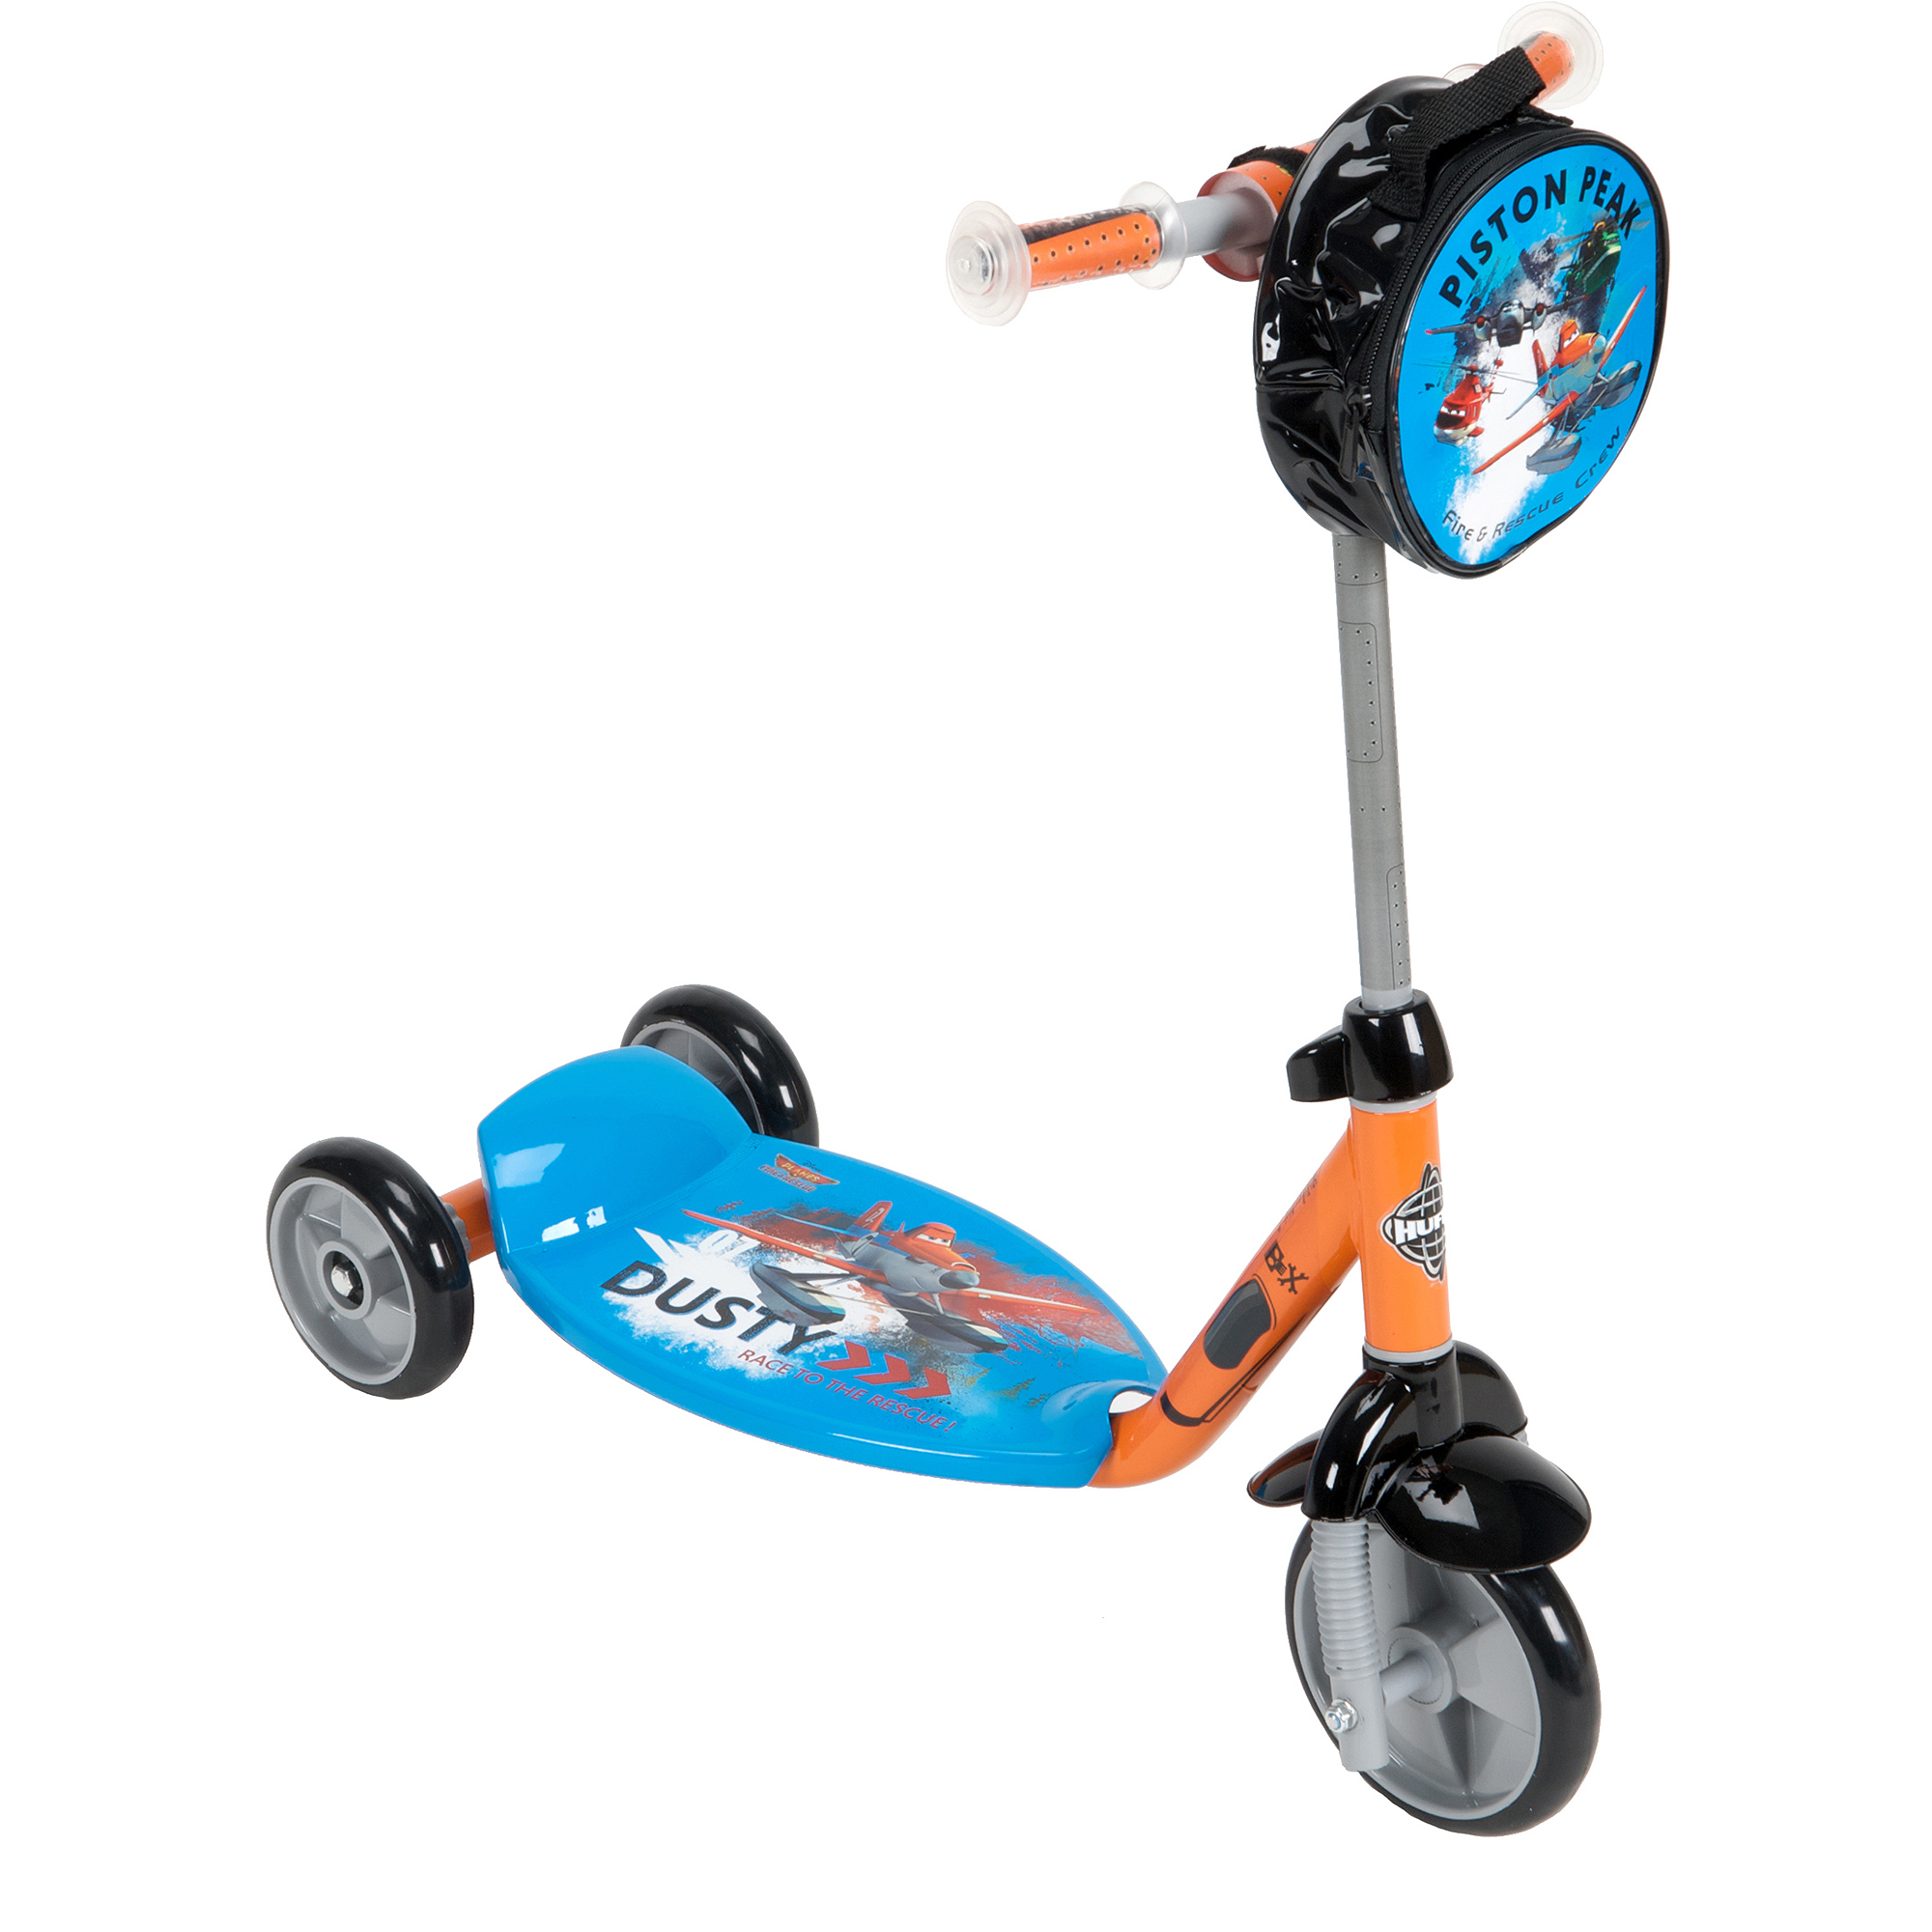 Huffy Disney Planes Fire and Rescue 3-Wheel Preschool Scooter